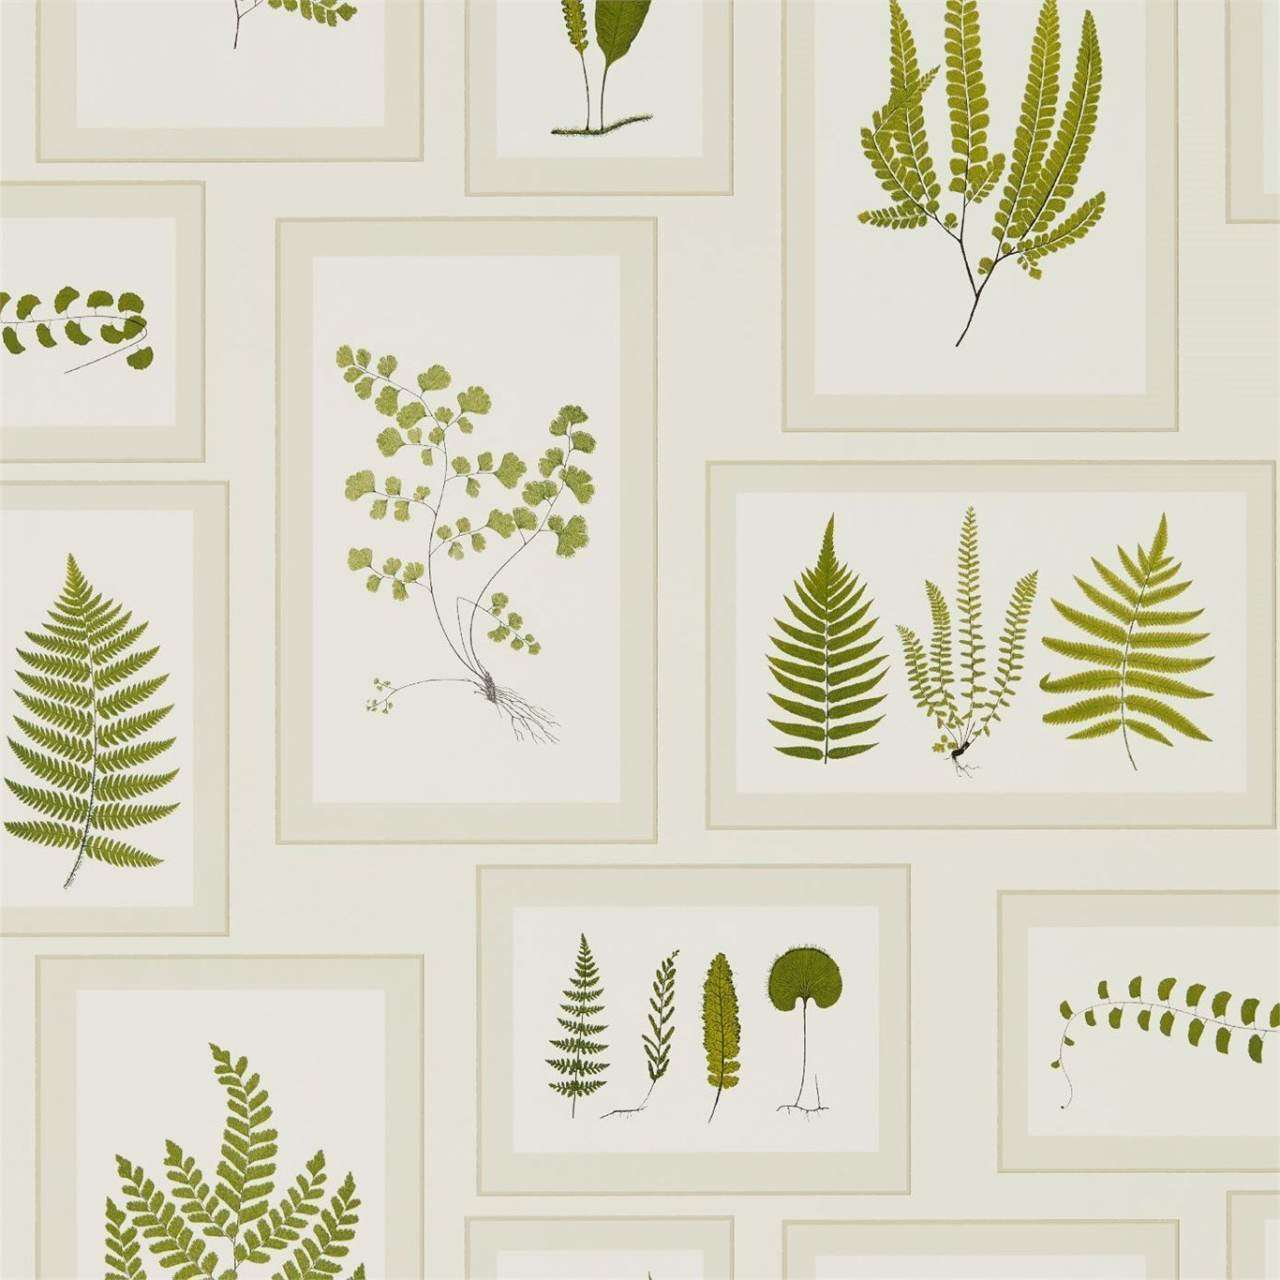 Fern Gallery Ivory/Green behang Sanderson Selected wallpapers by OOSTENDORP